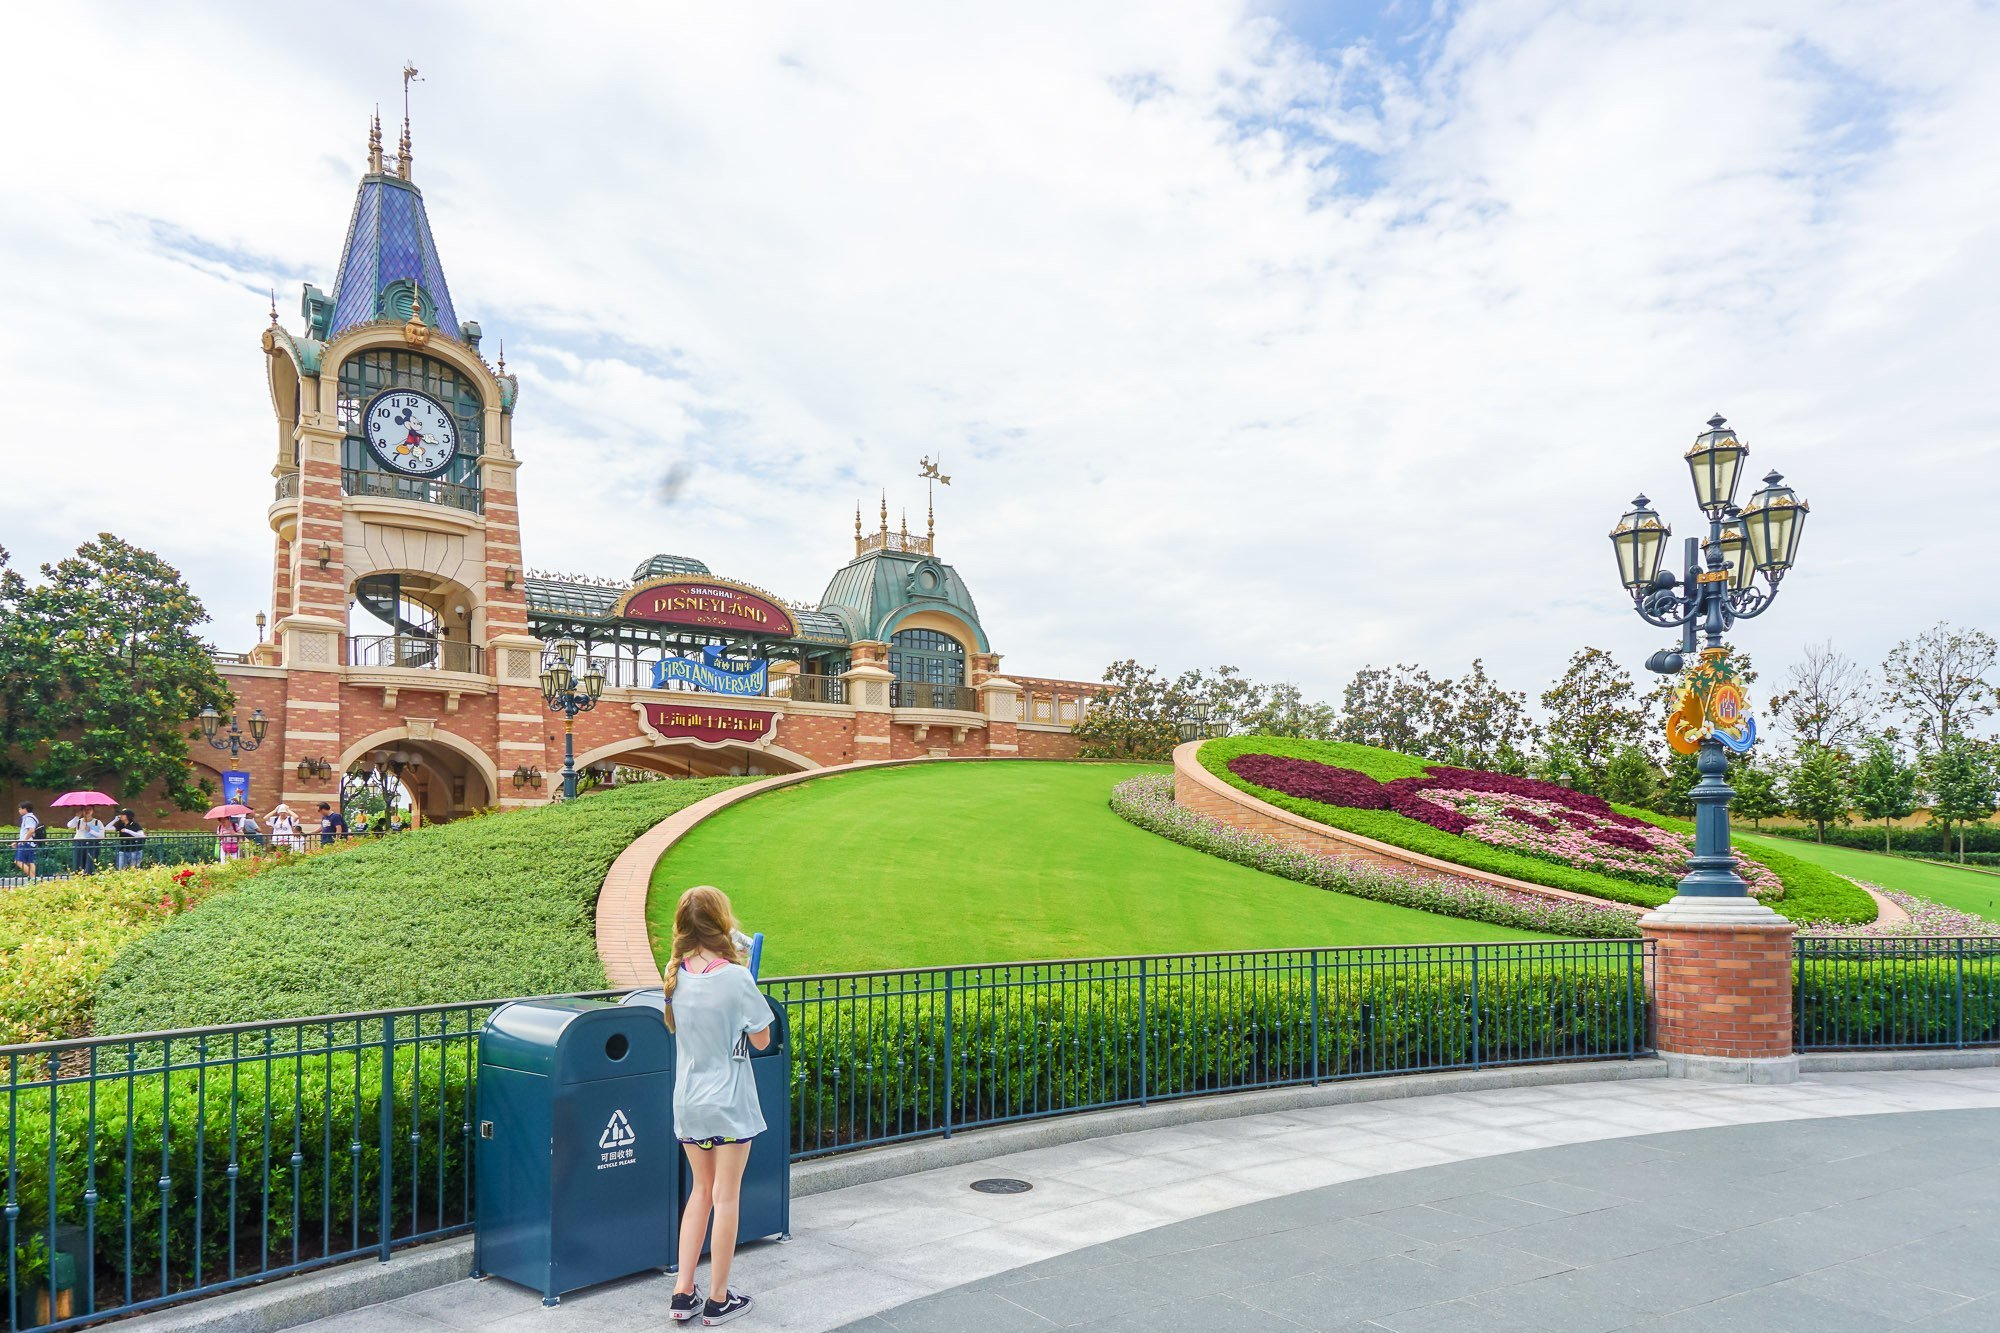 The entrance to Shanghai Disneyland in China.